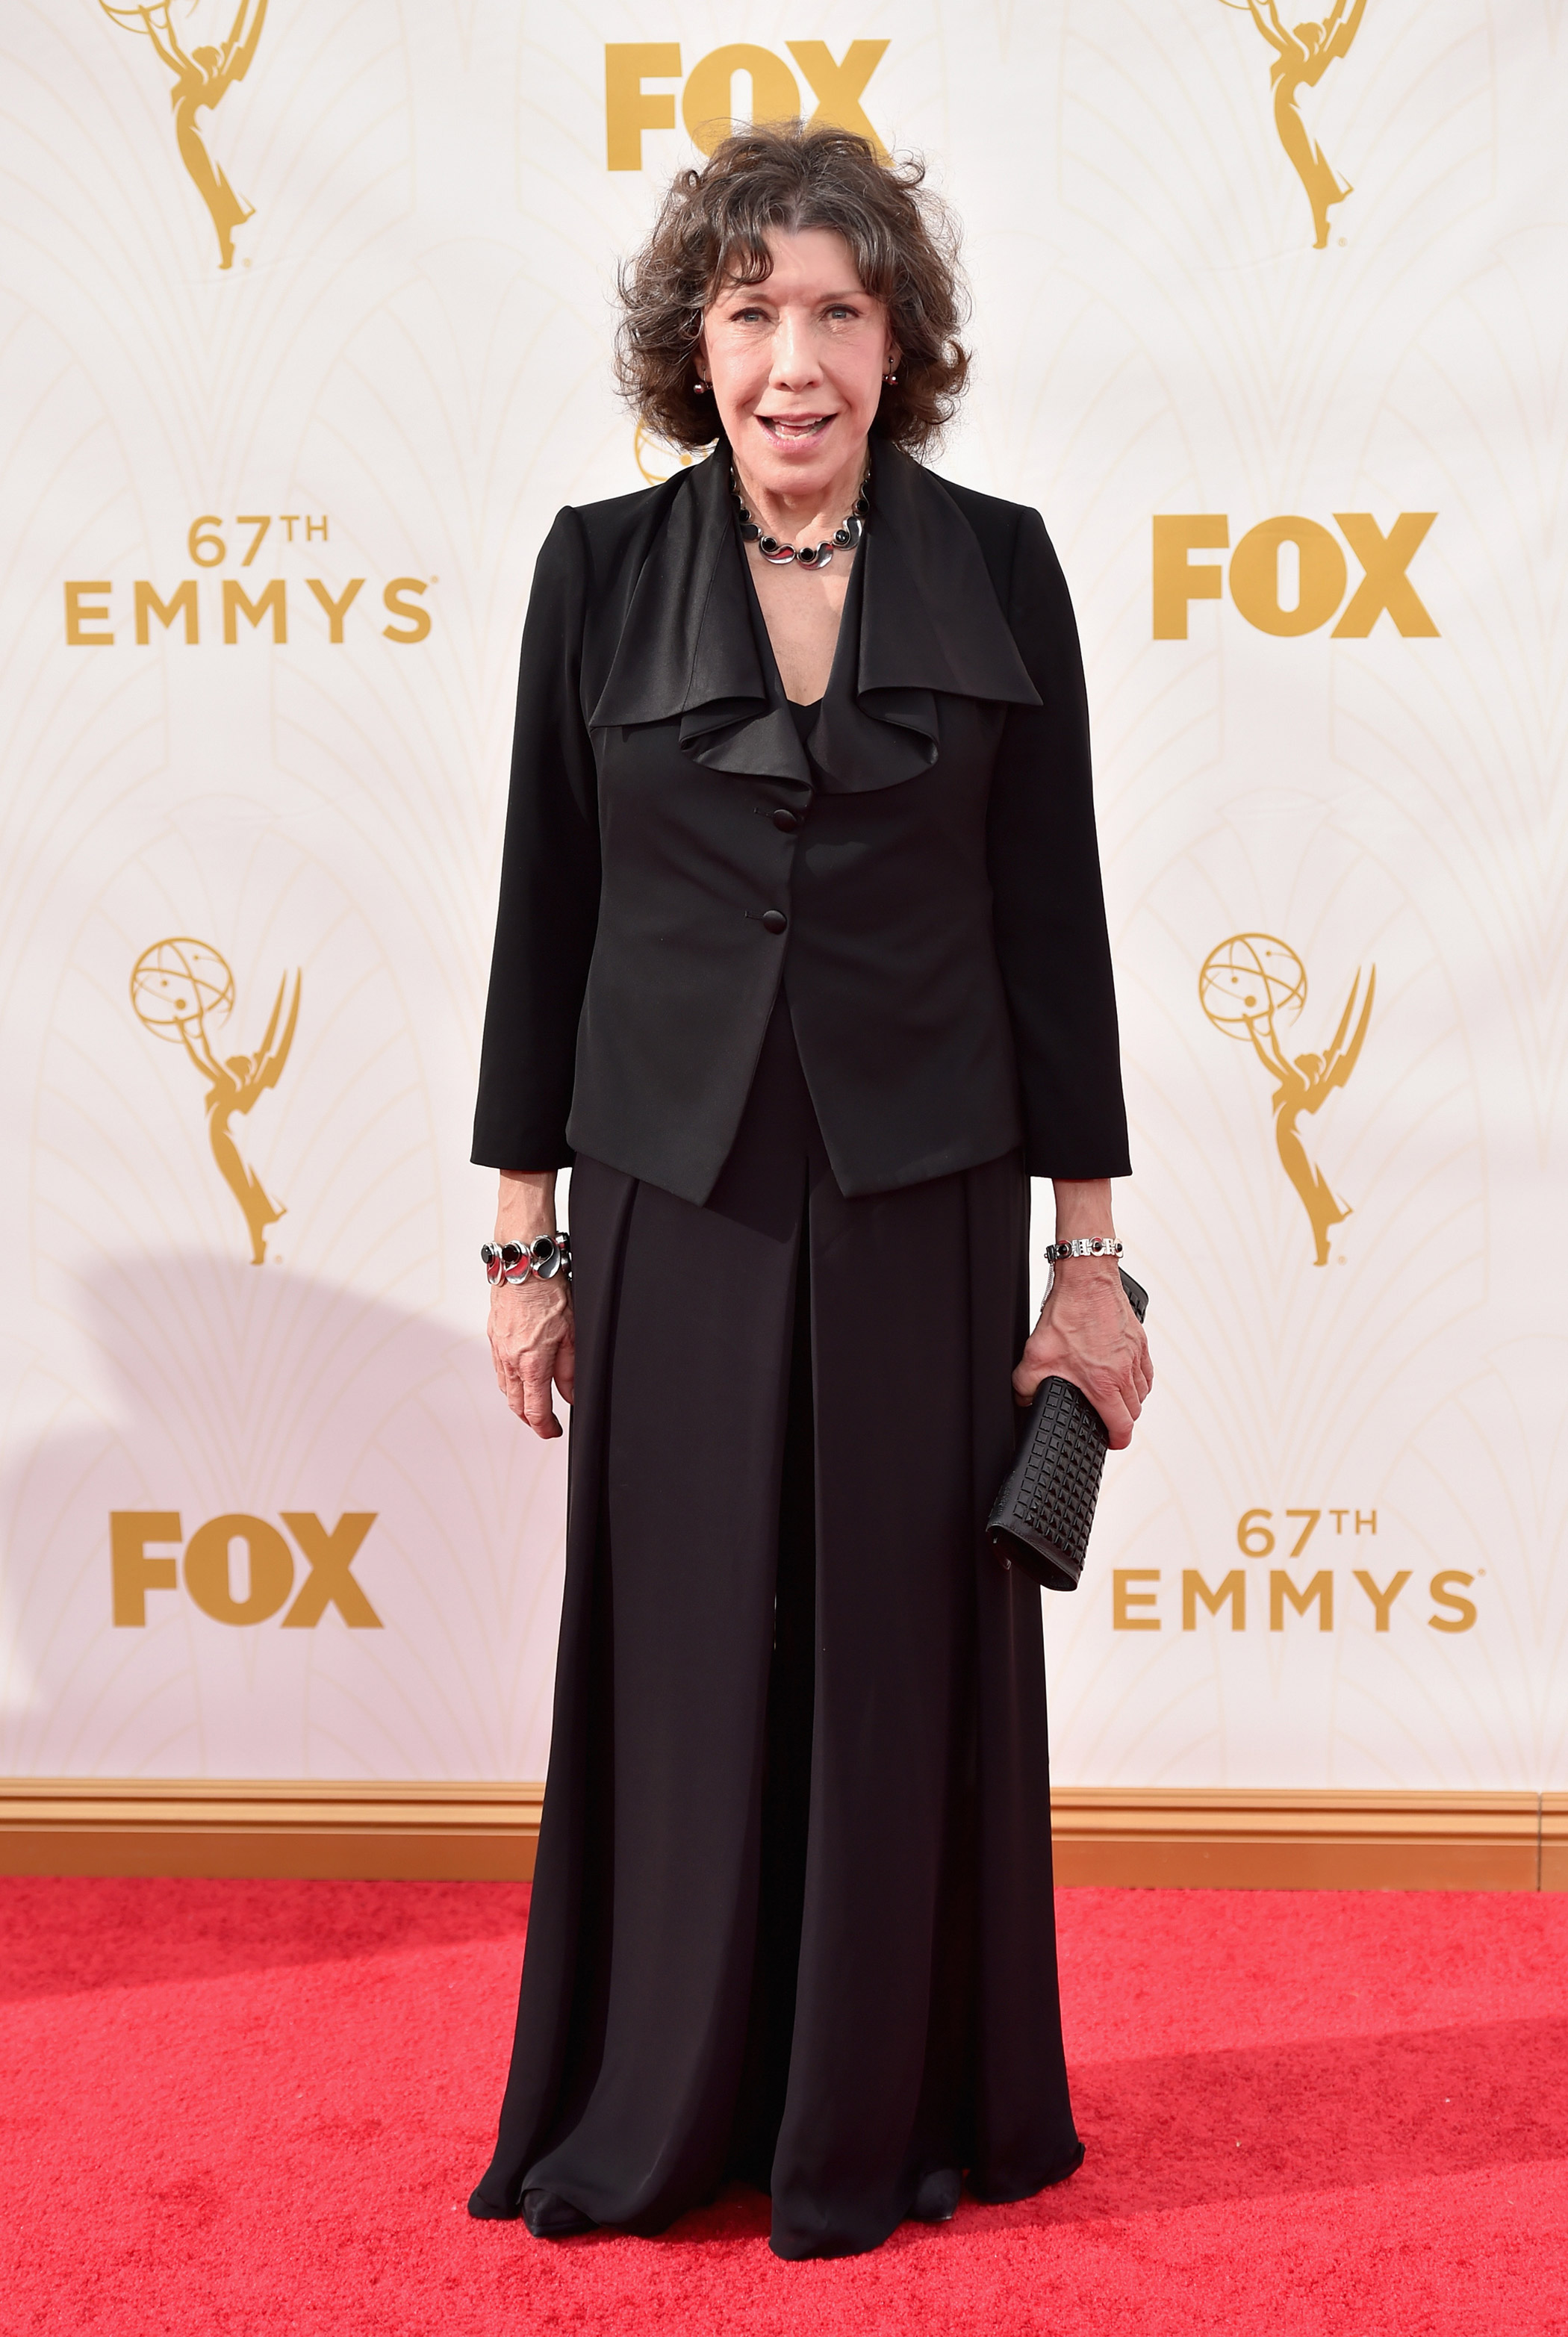 Lily Tomlin at the 67th Emmy Award on Sept. 20, 2015 in Los Angeles.